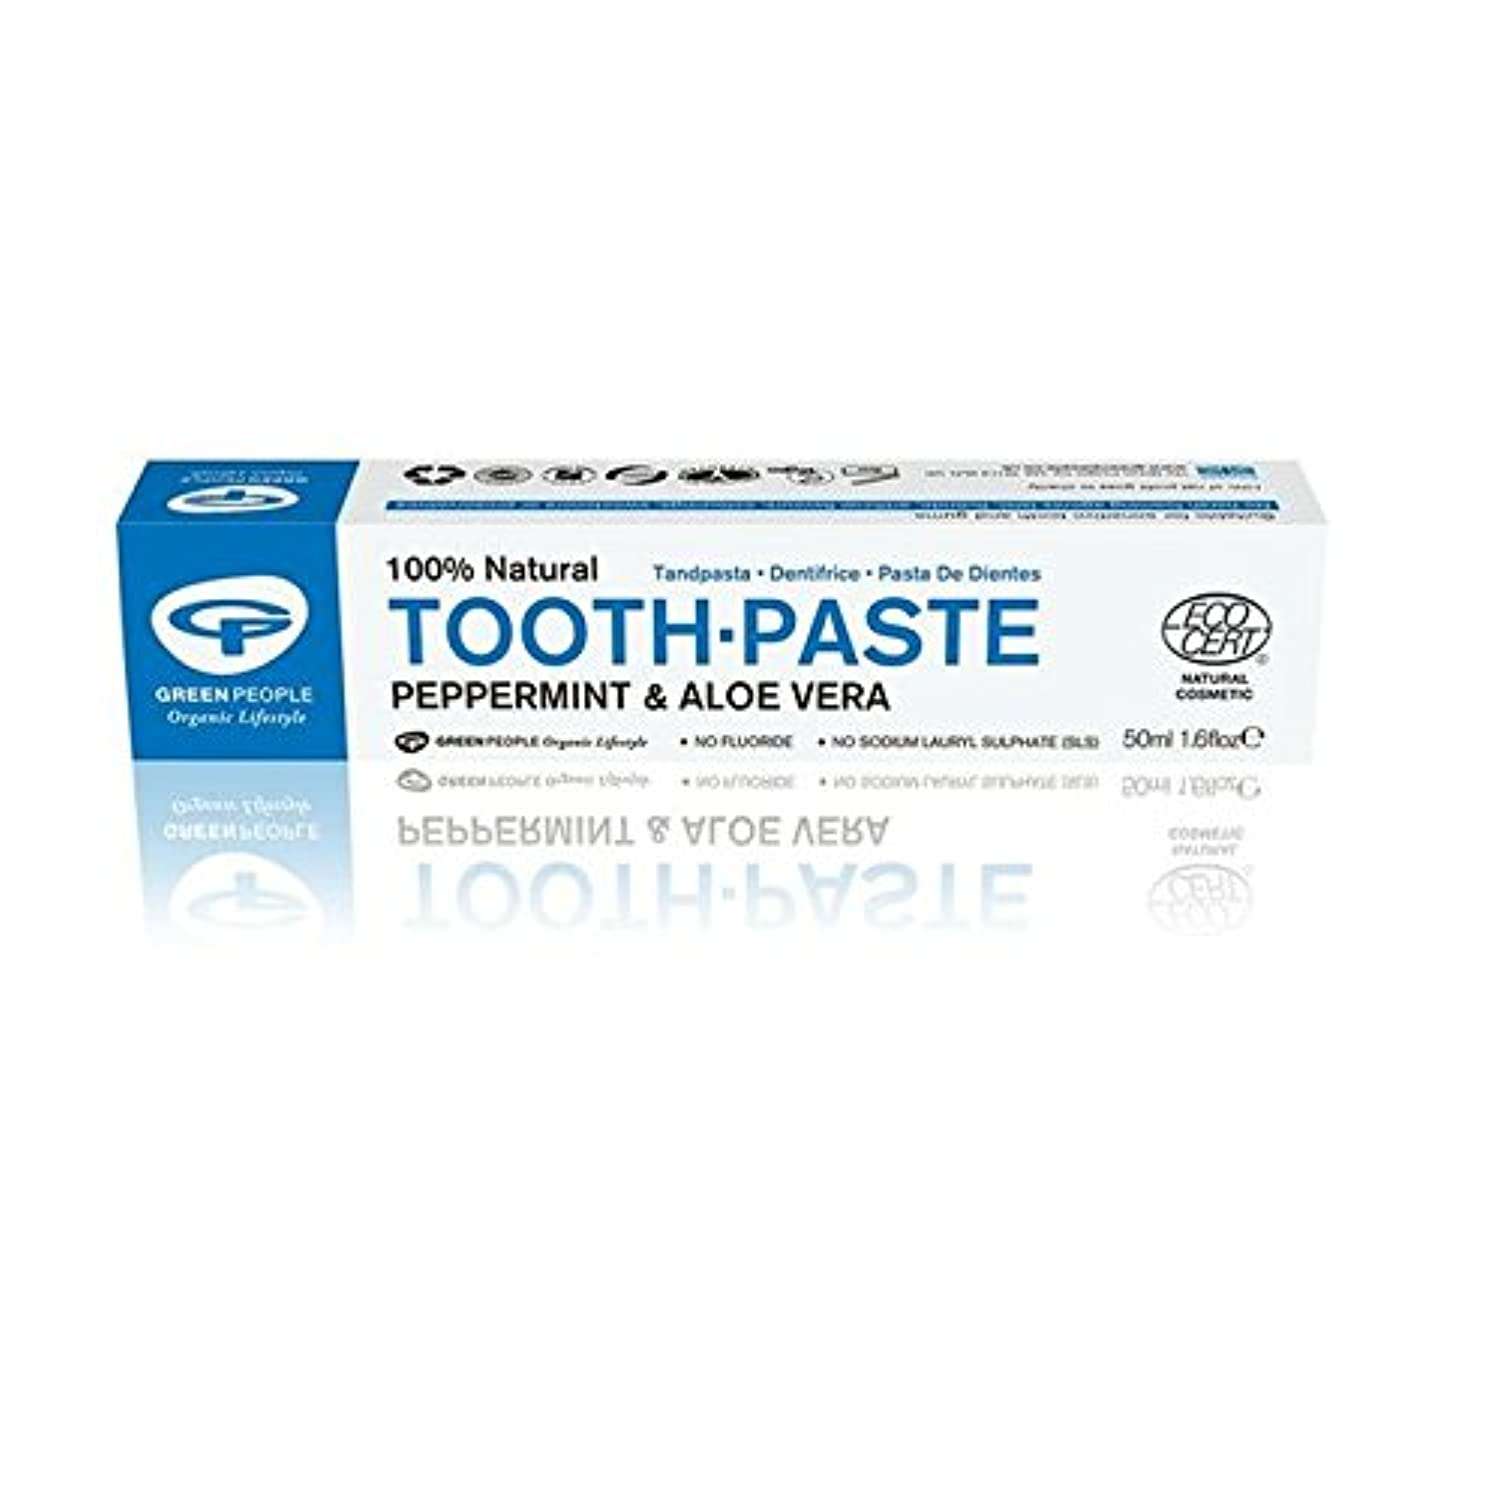 Green People Natural Mint Toothpaste 50ml - 緑の人々の自然ミント歯磨き粉50ミリリットル [並行輸入品]